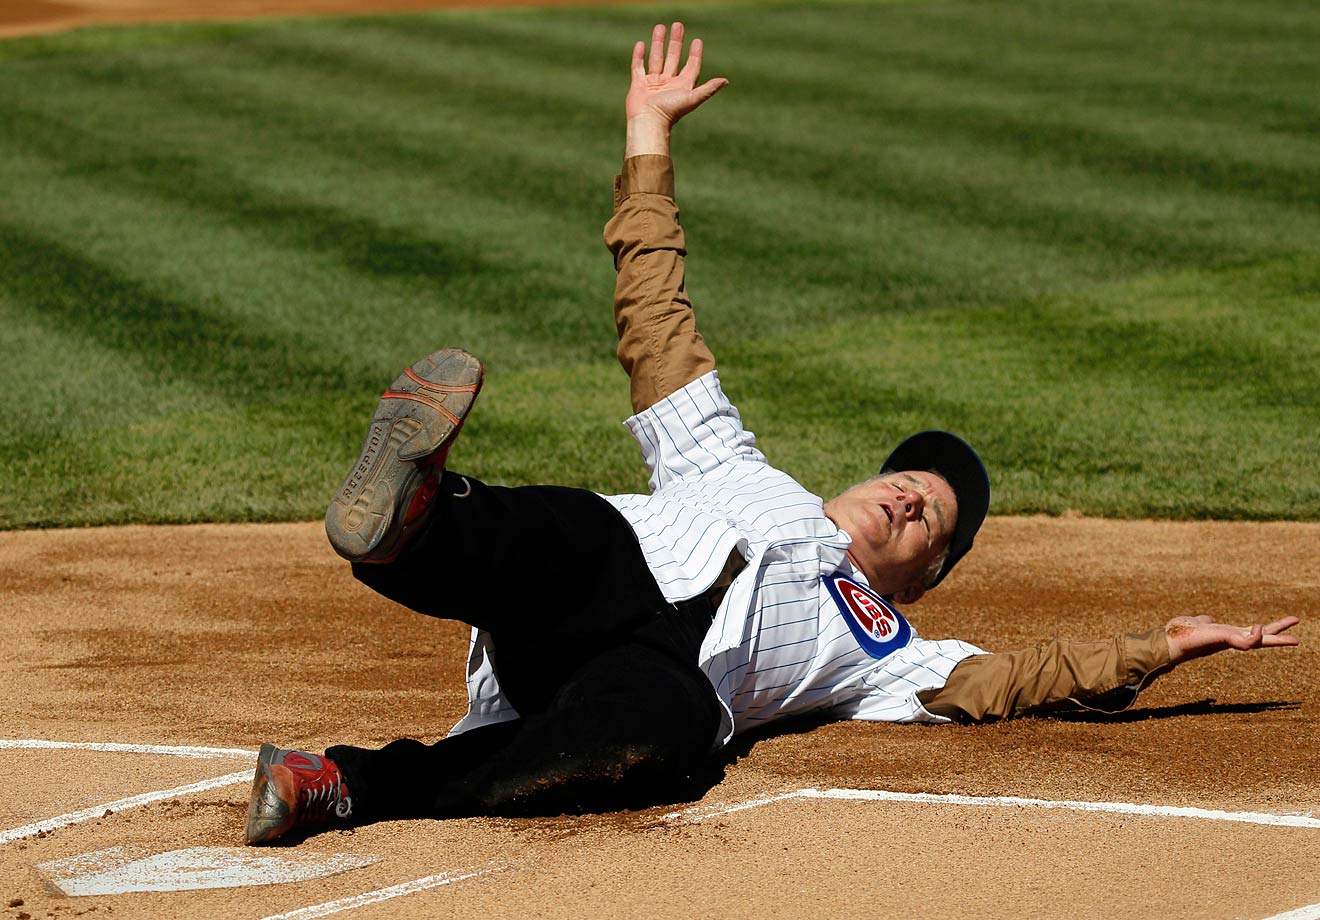 Bill Murray slides into home after rounding the bases before throwing out the ceremonial first pitch for the Chicago Cubs game against the Washington Nationals during opening day on April 5, 2012 at Wrigley Field in Chicago.